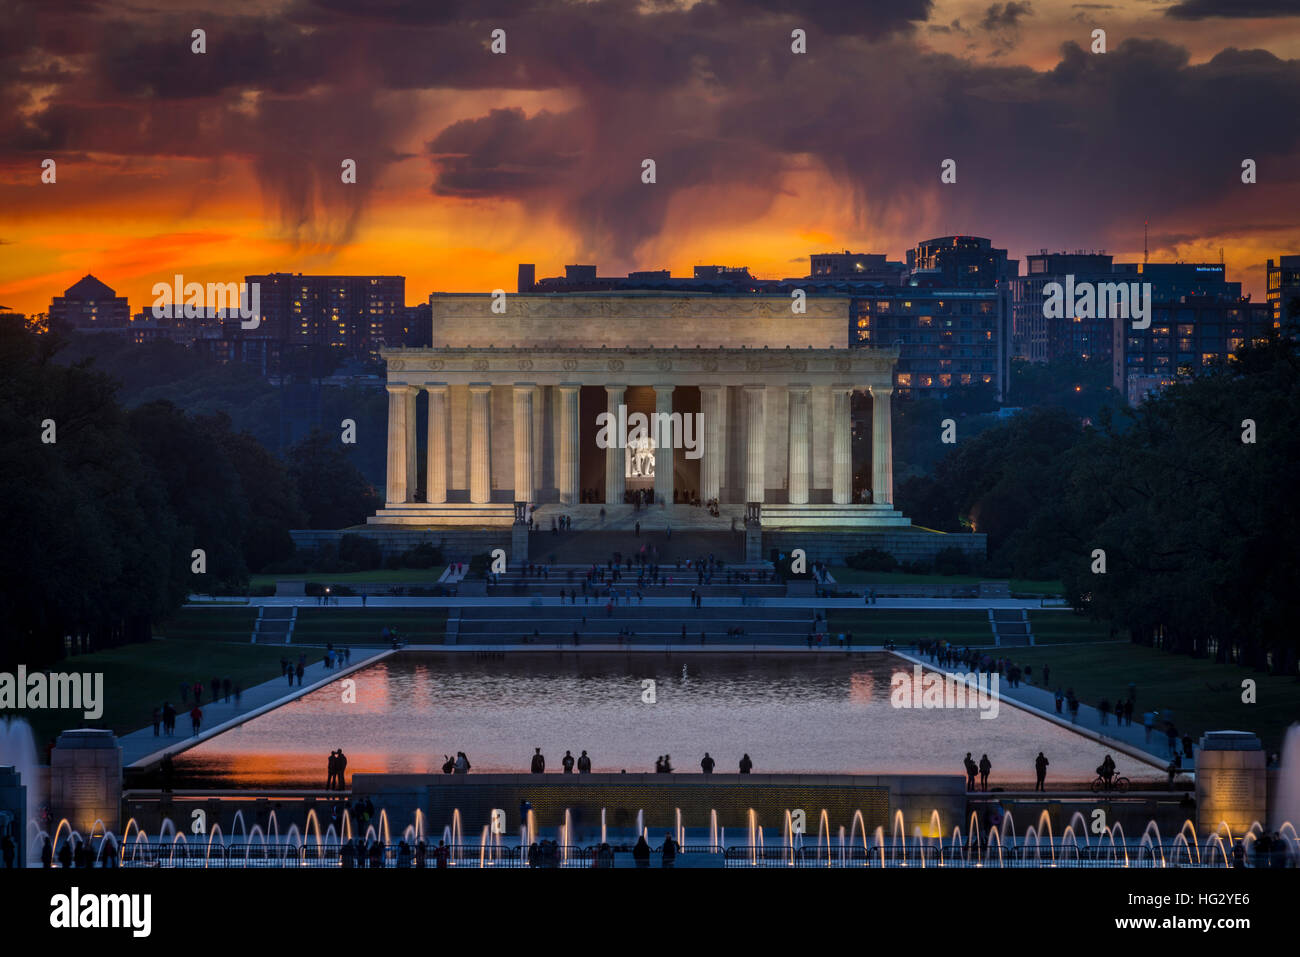 Lincoln Memorial, Washington DC USA Photo Stock